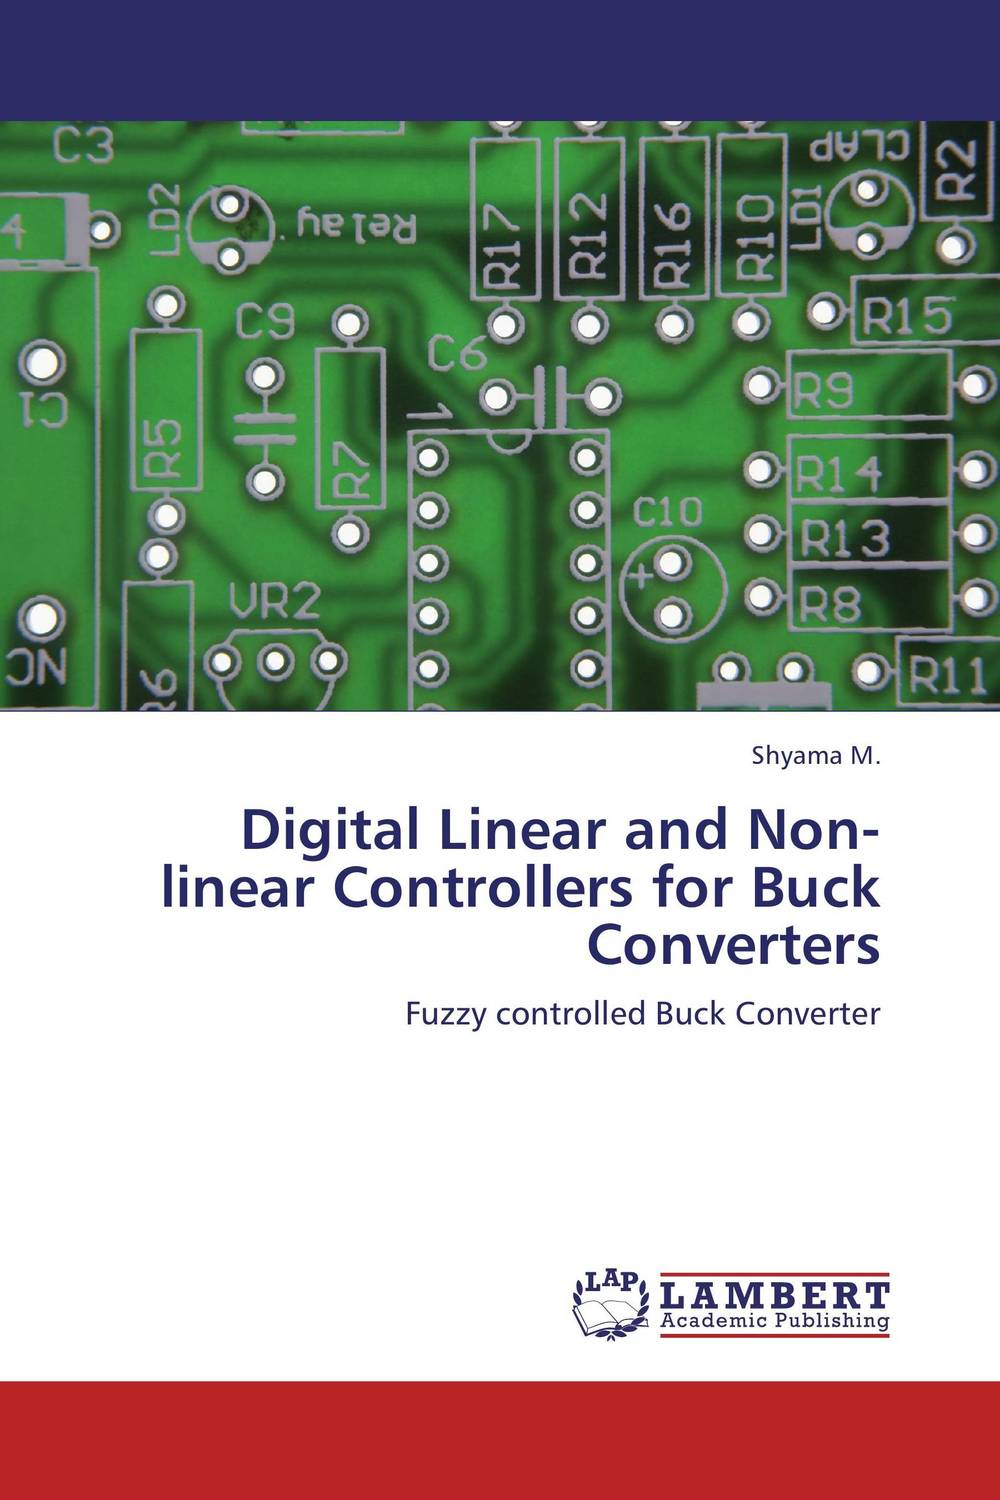 Digital Linear and Non-linear Controllers for Buck Converters digital linear and non linear controllers for buck converters